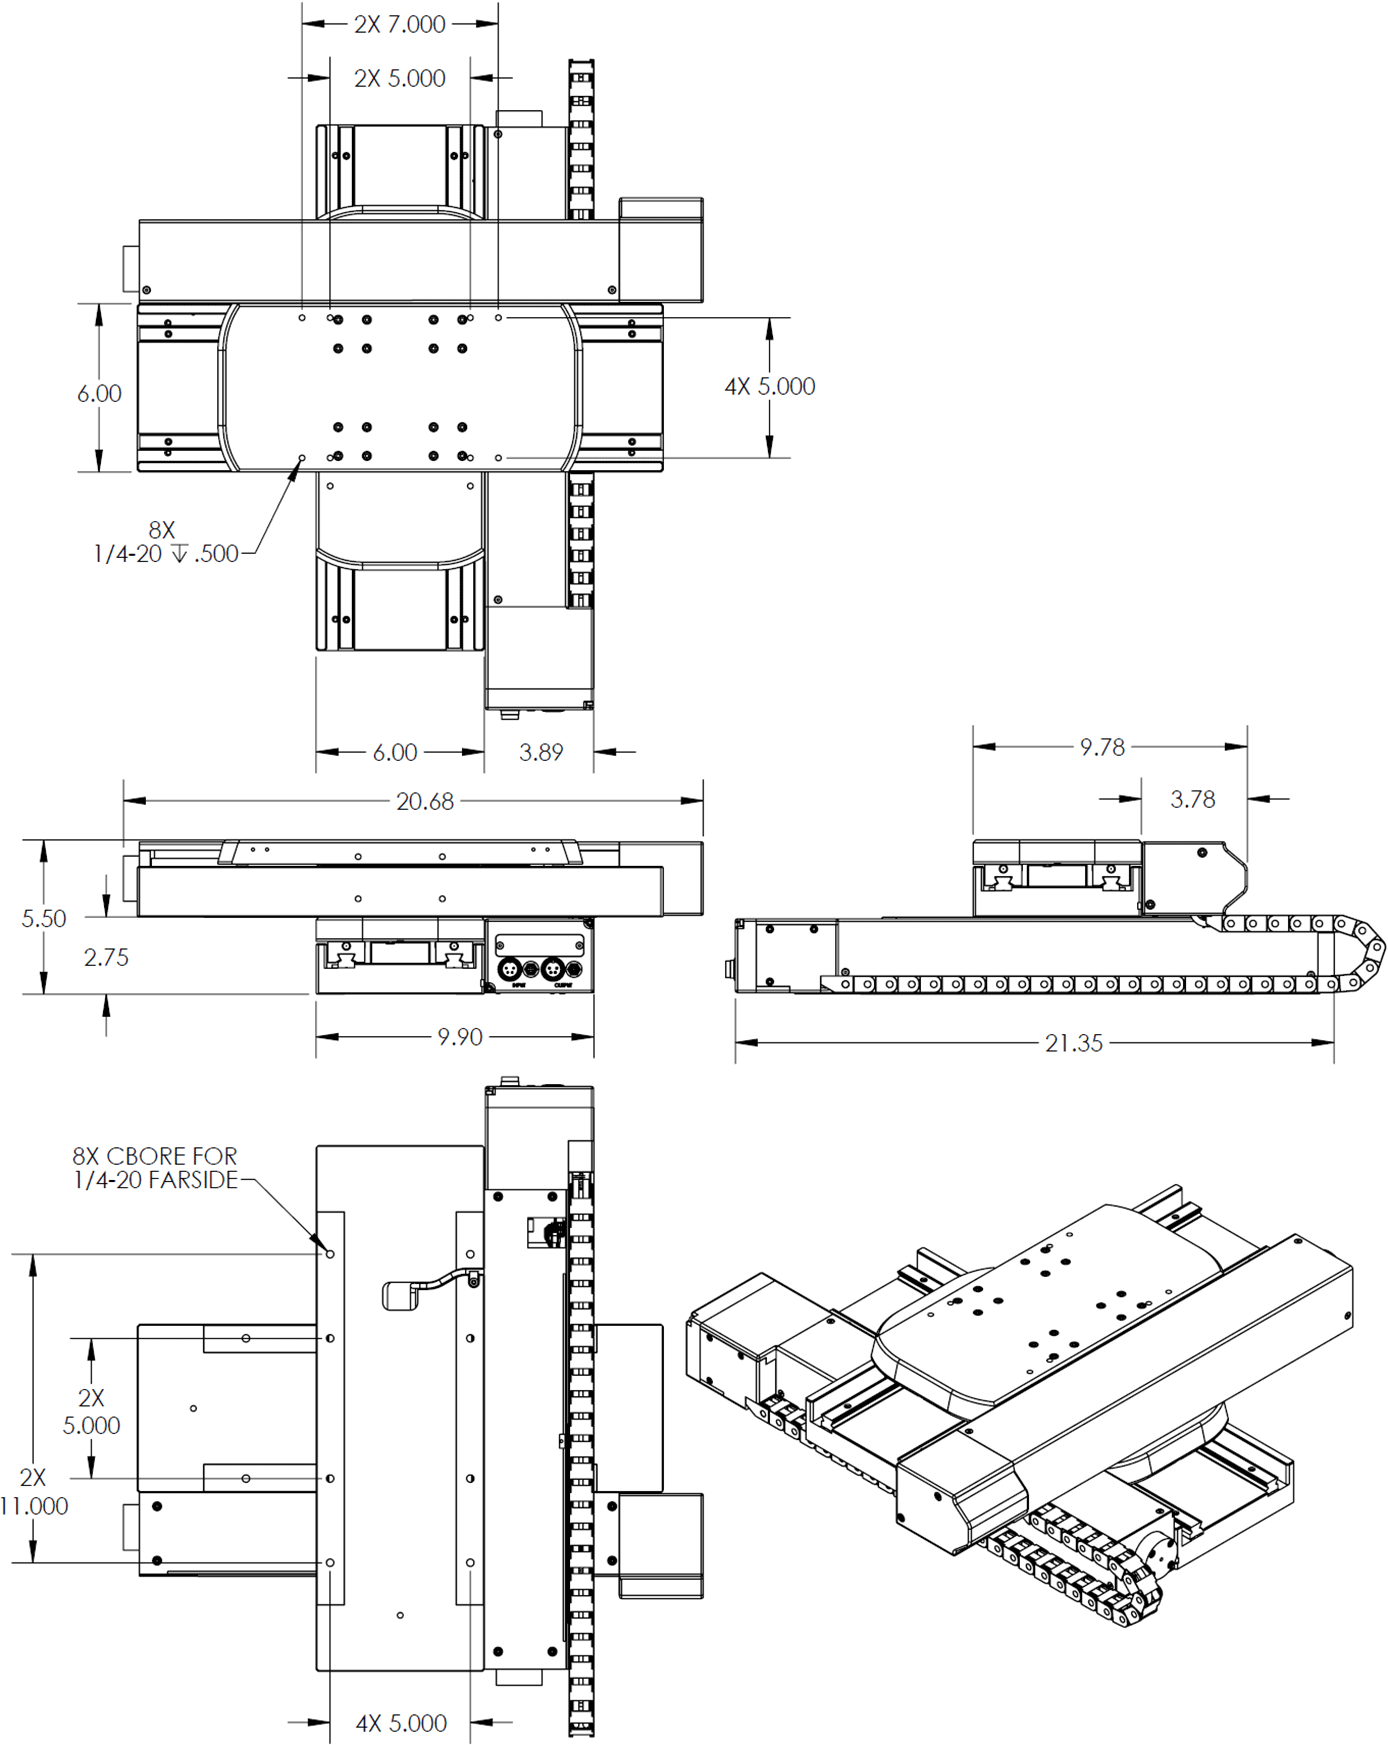 300mm x 300mm X-Y OEM Stage Dimension Drawings